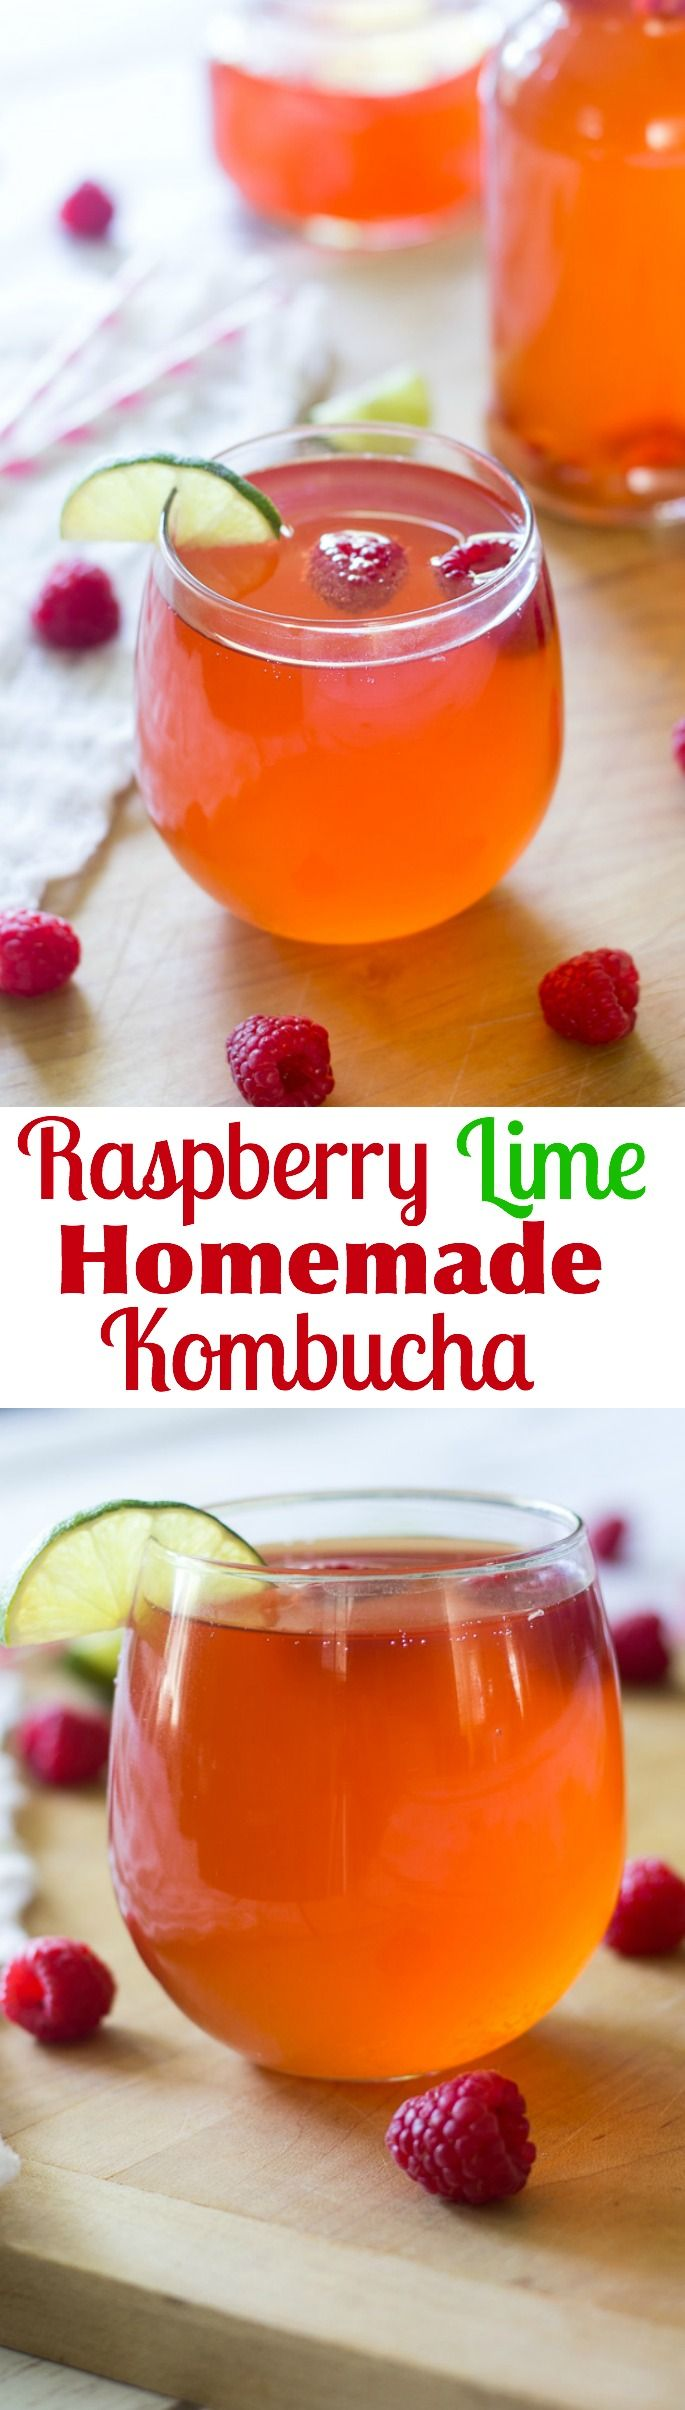 98 Best Healthy Drink Recipes Images On Pinterest Cooking Food Swisse Raspberry Extract Ketones 60 Vege Capsules Homemade Lime Kombucha